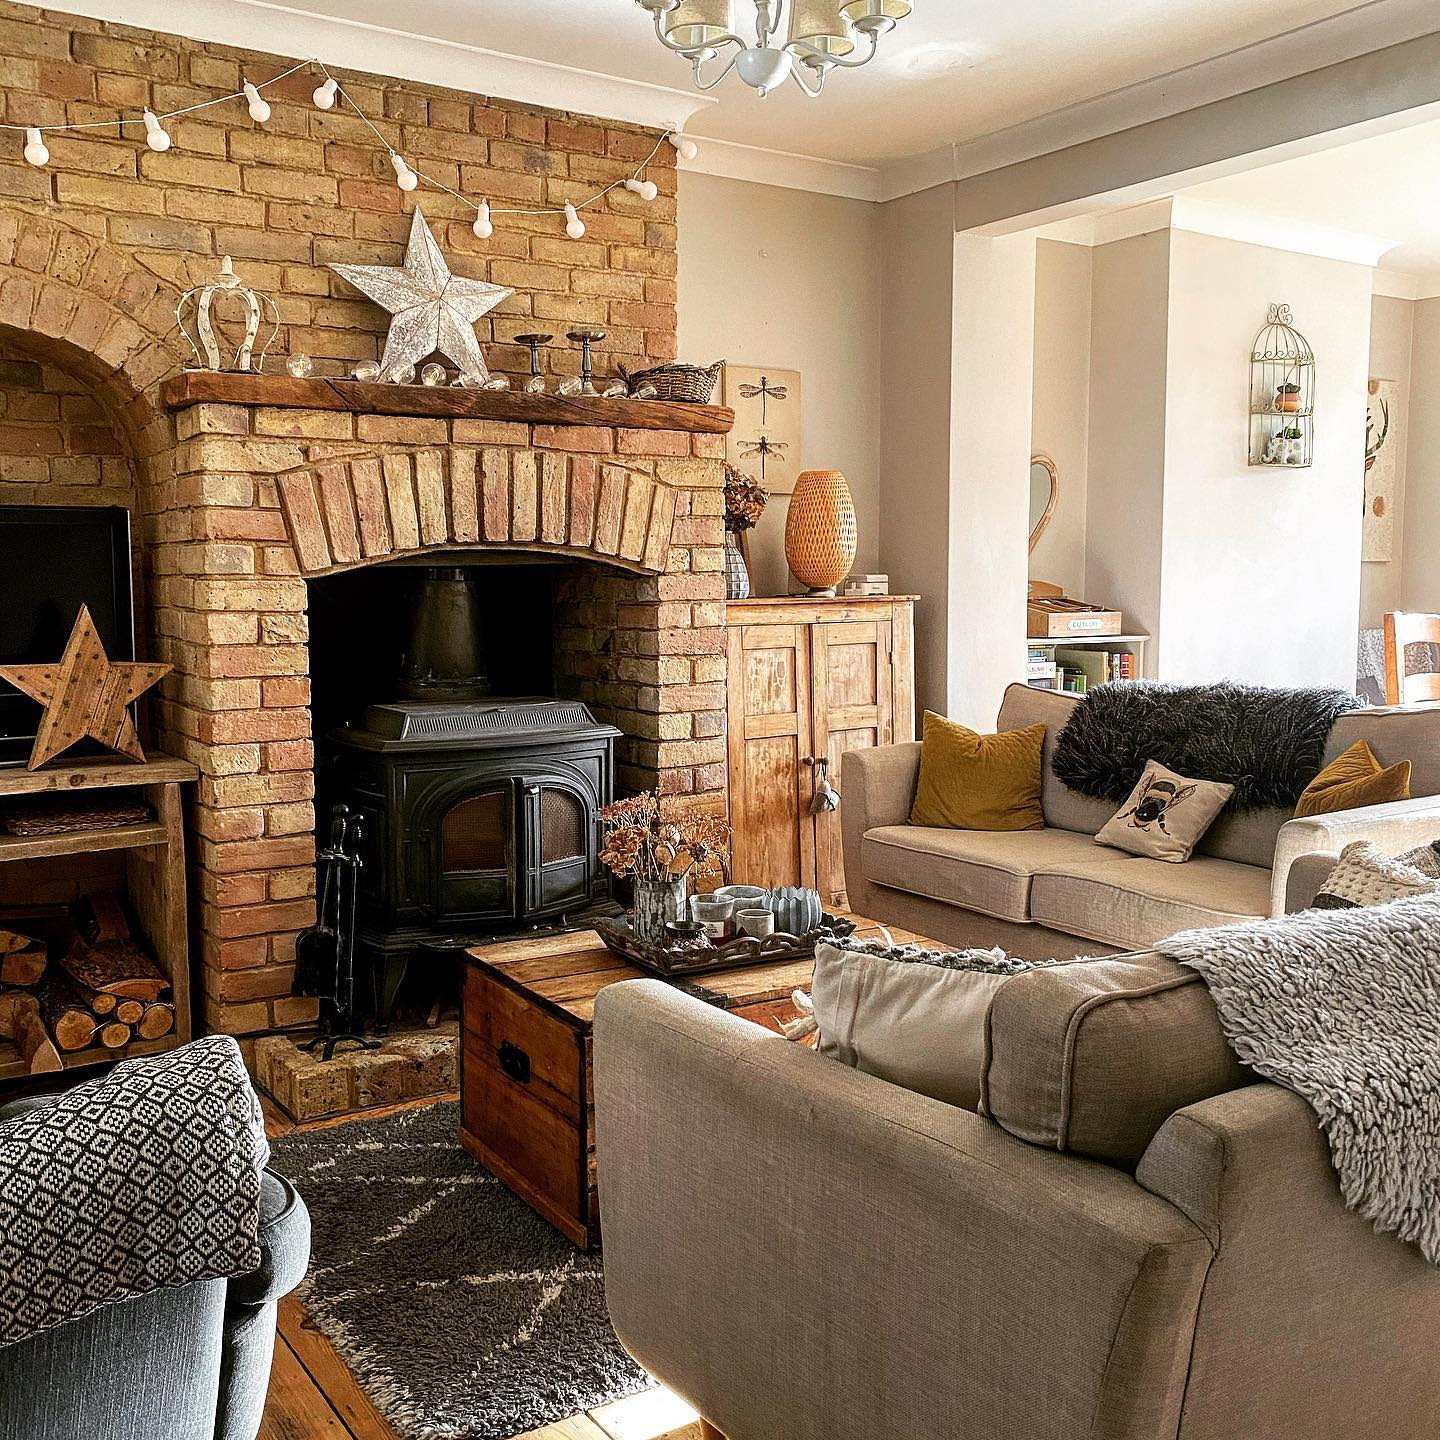 Rustic Country Living Room Ideas 2 -shulashouse